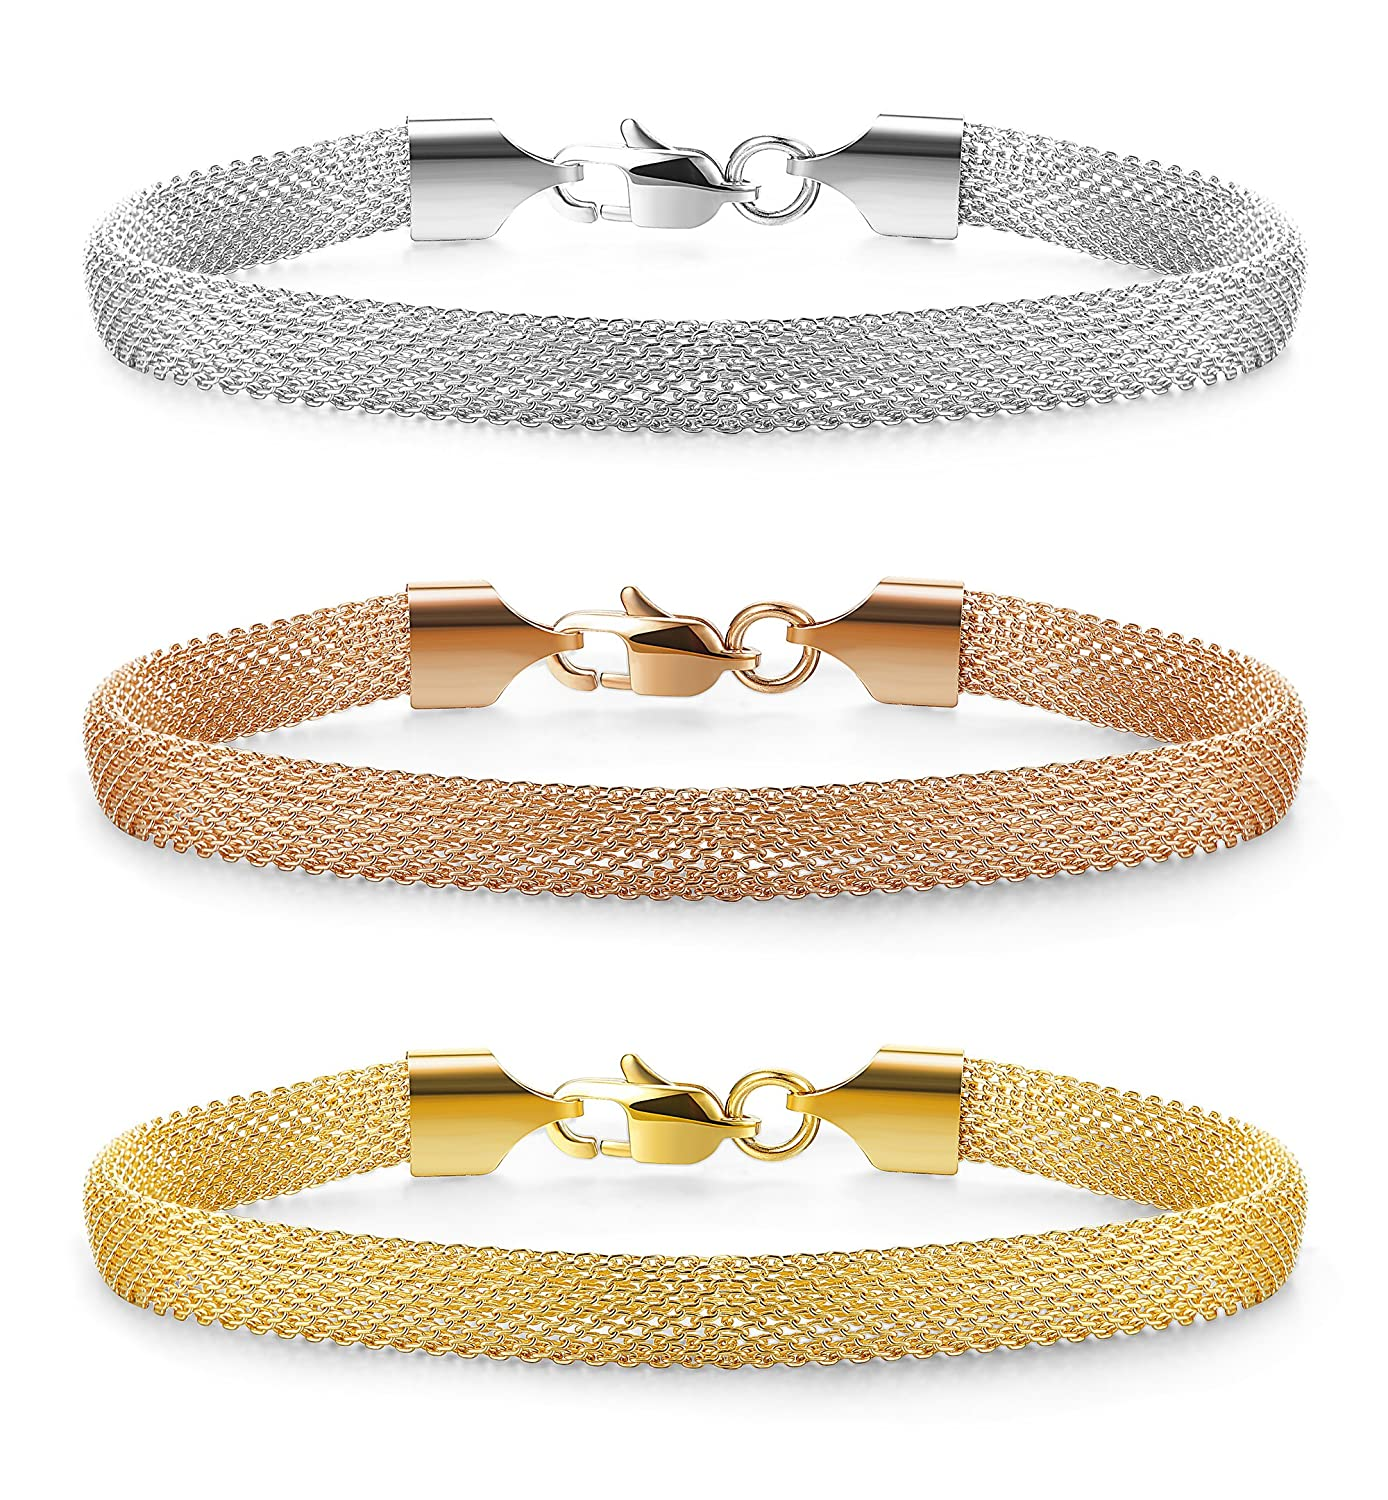 Jstyle Mesh Bracelet Stainless Steel Chain Link Bracelets for Women Girls Rose Silver Golden Tone 7-8 Inch B11571